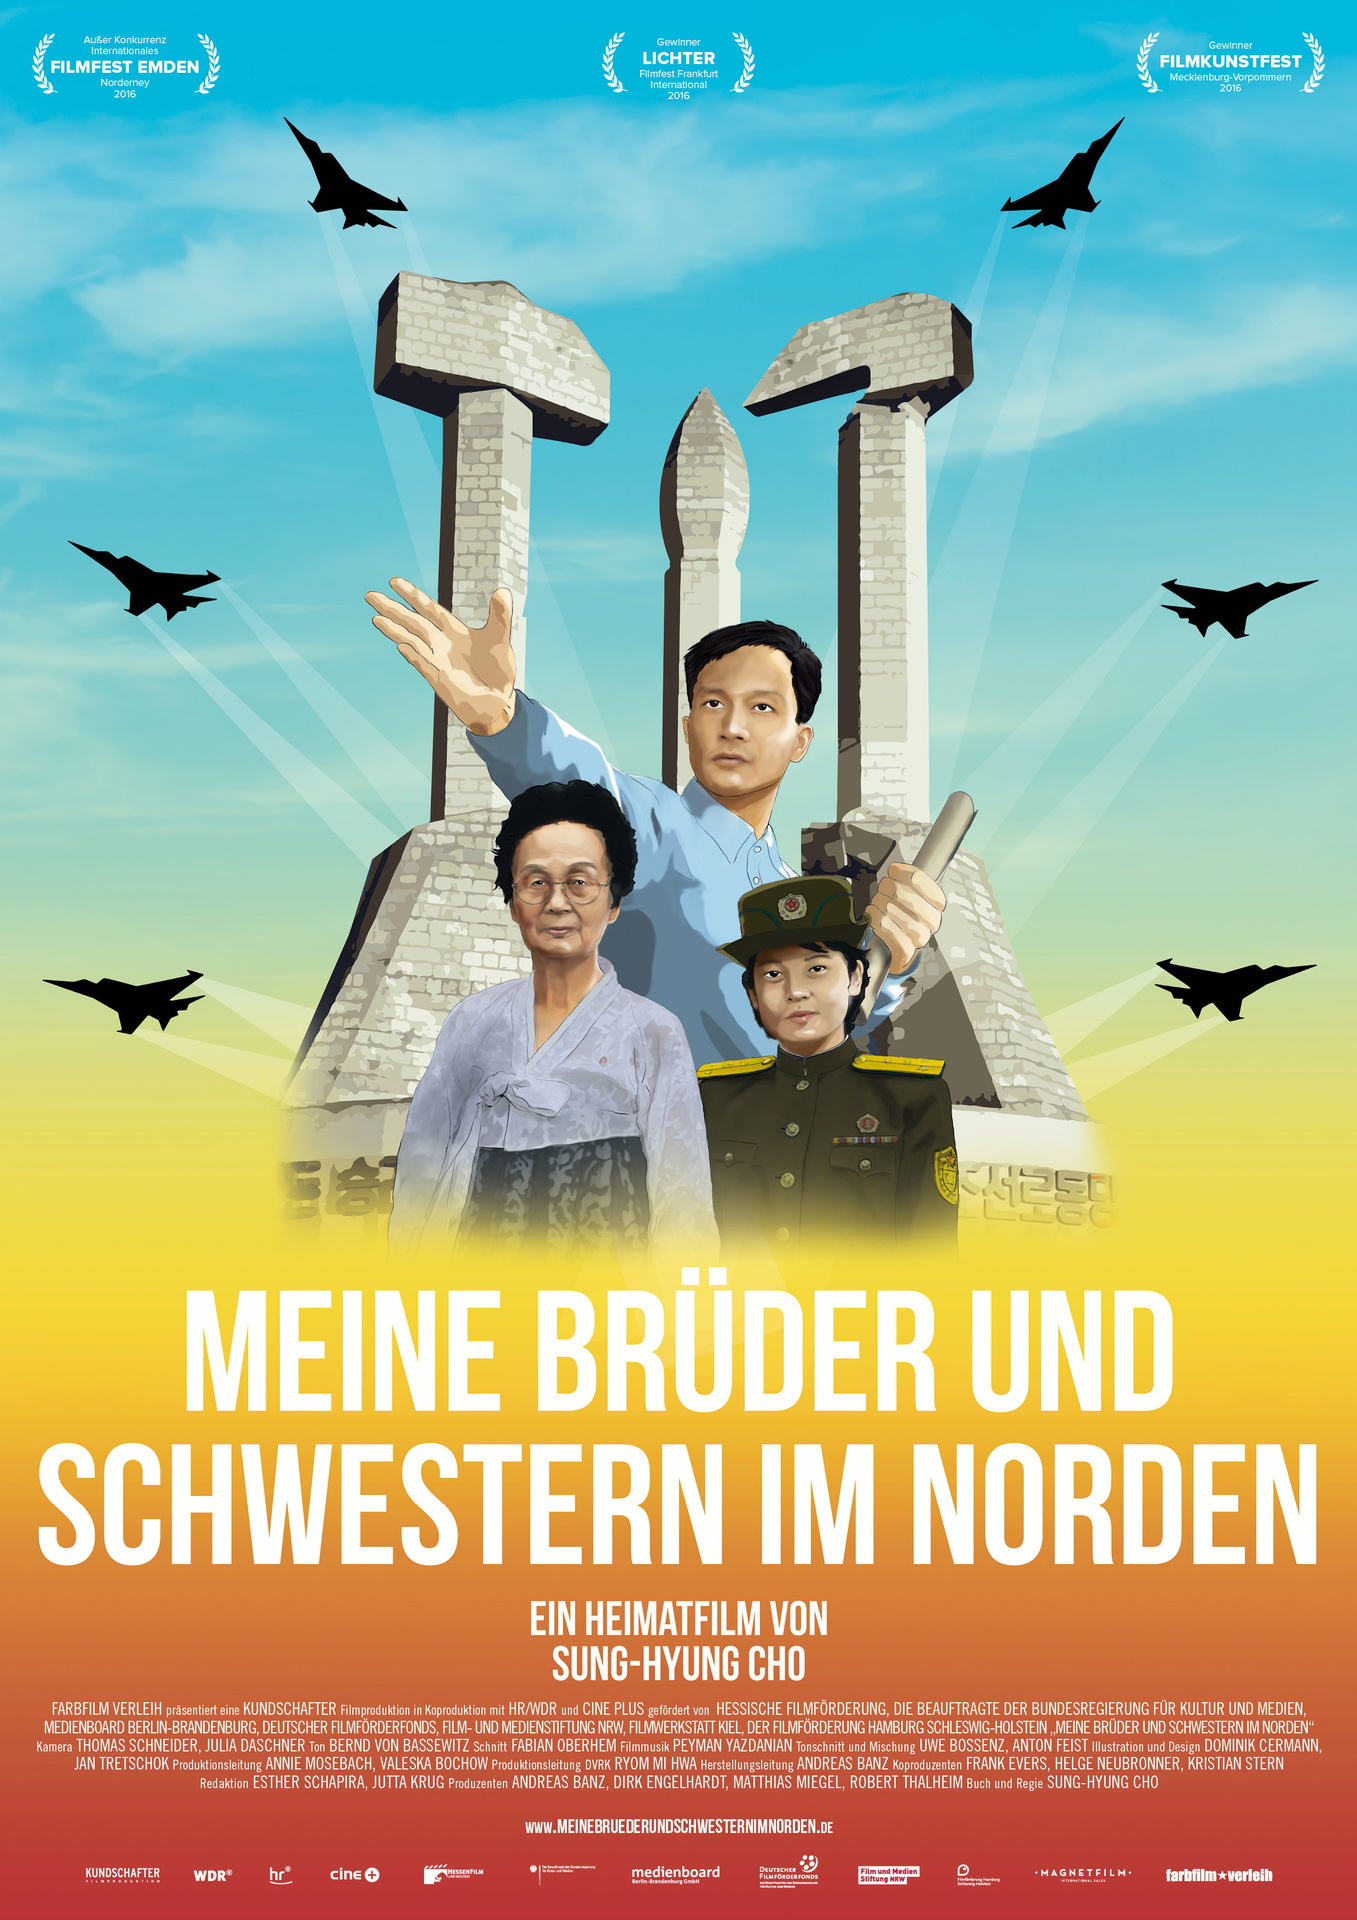 Meine Brüder und Schwestern im Norden (My Brothers and Sisters in the North) (Sung Hyung Cho, 2016)